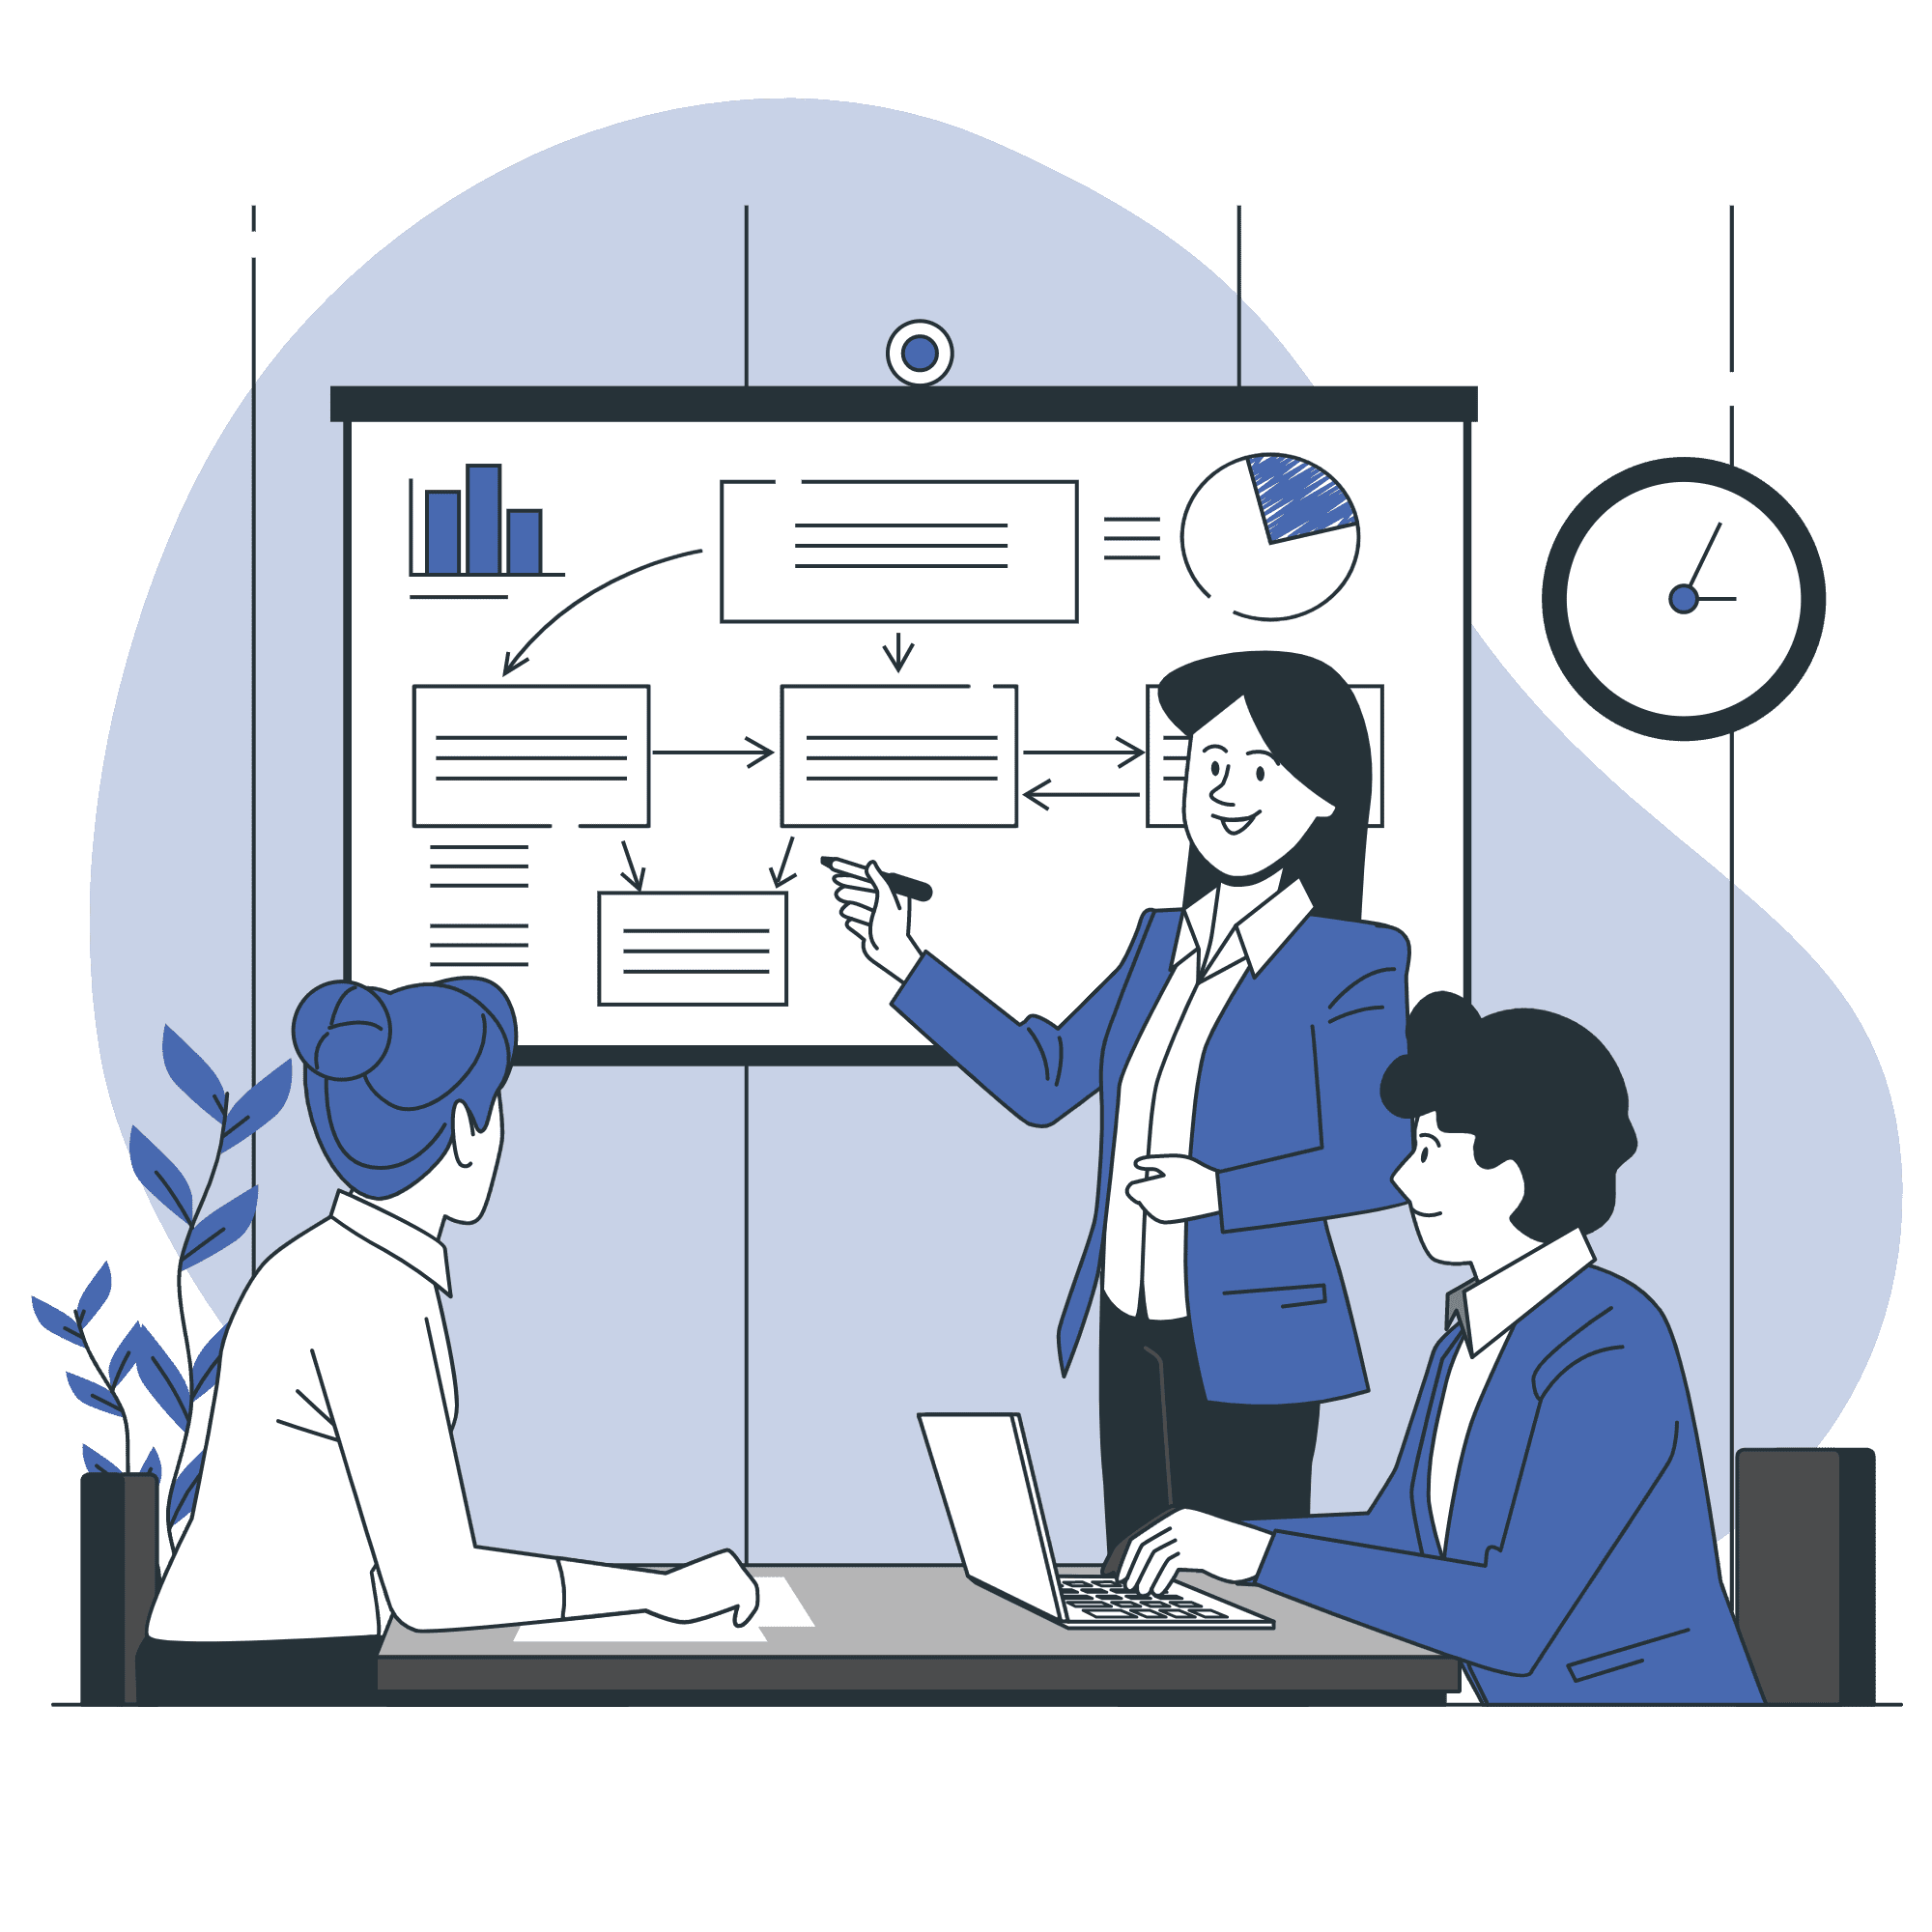 Business consulting vector illustration